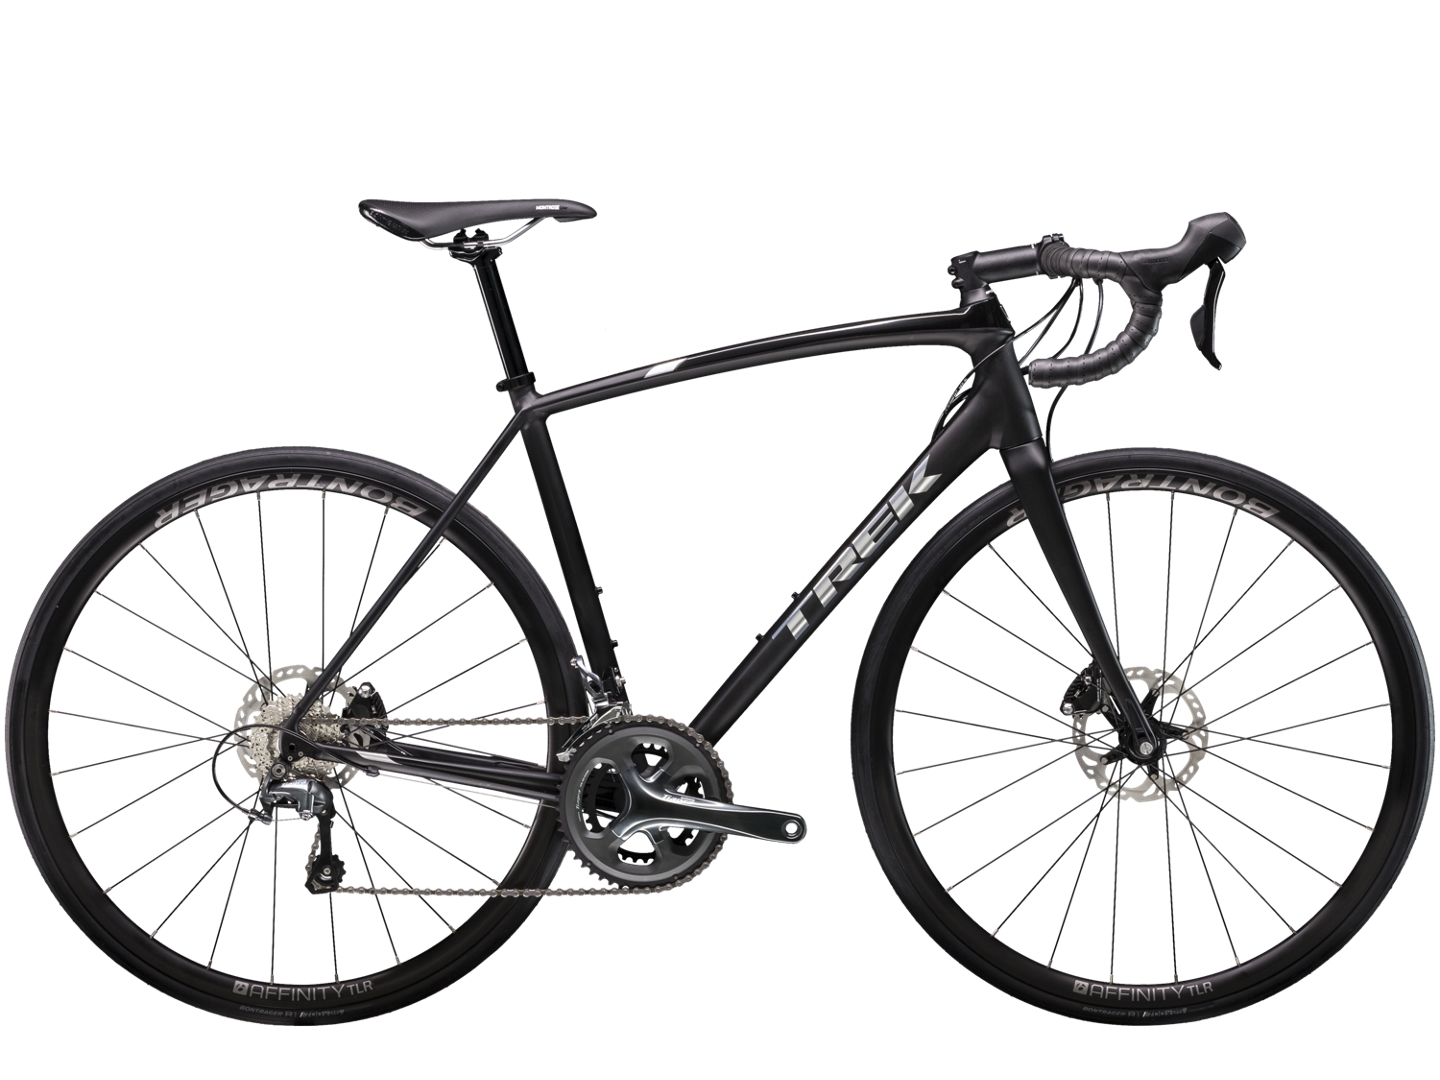 TREK Edmonda ALR 4 disc $1679.99